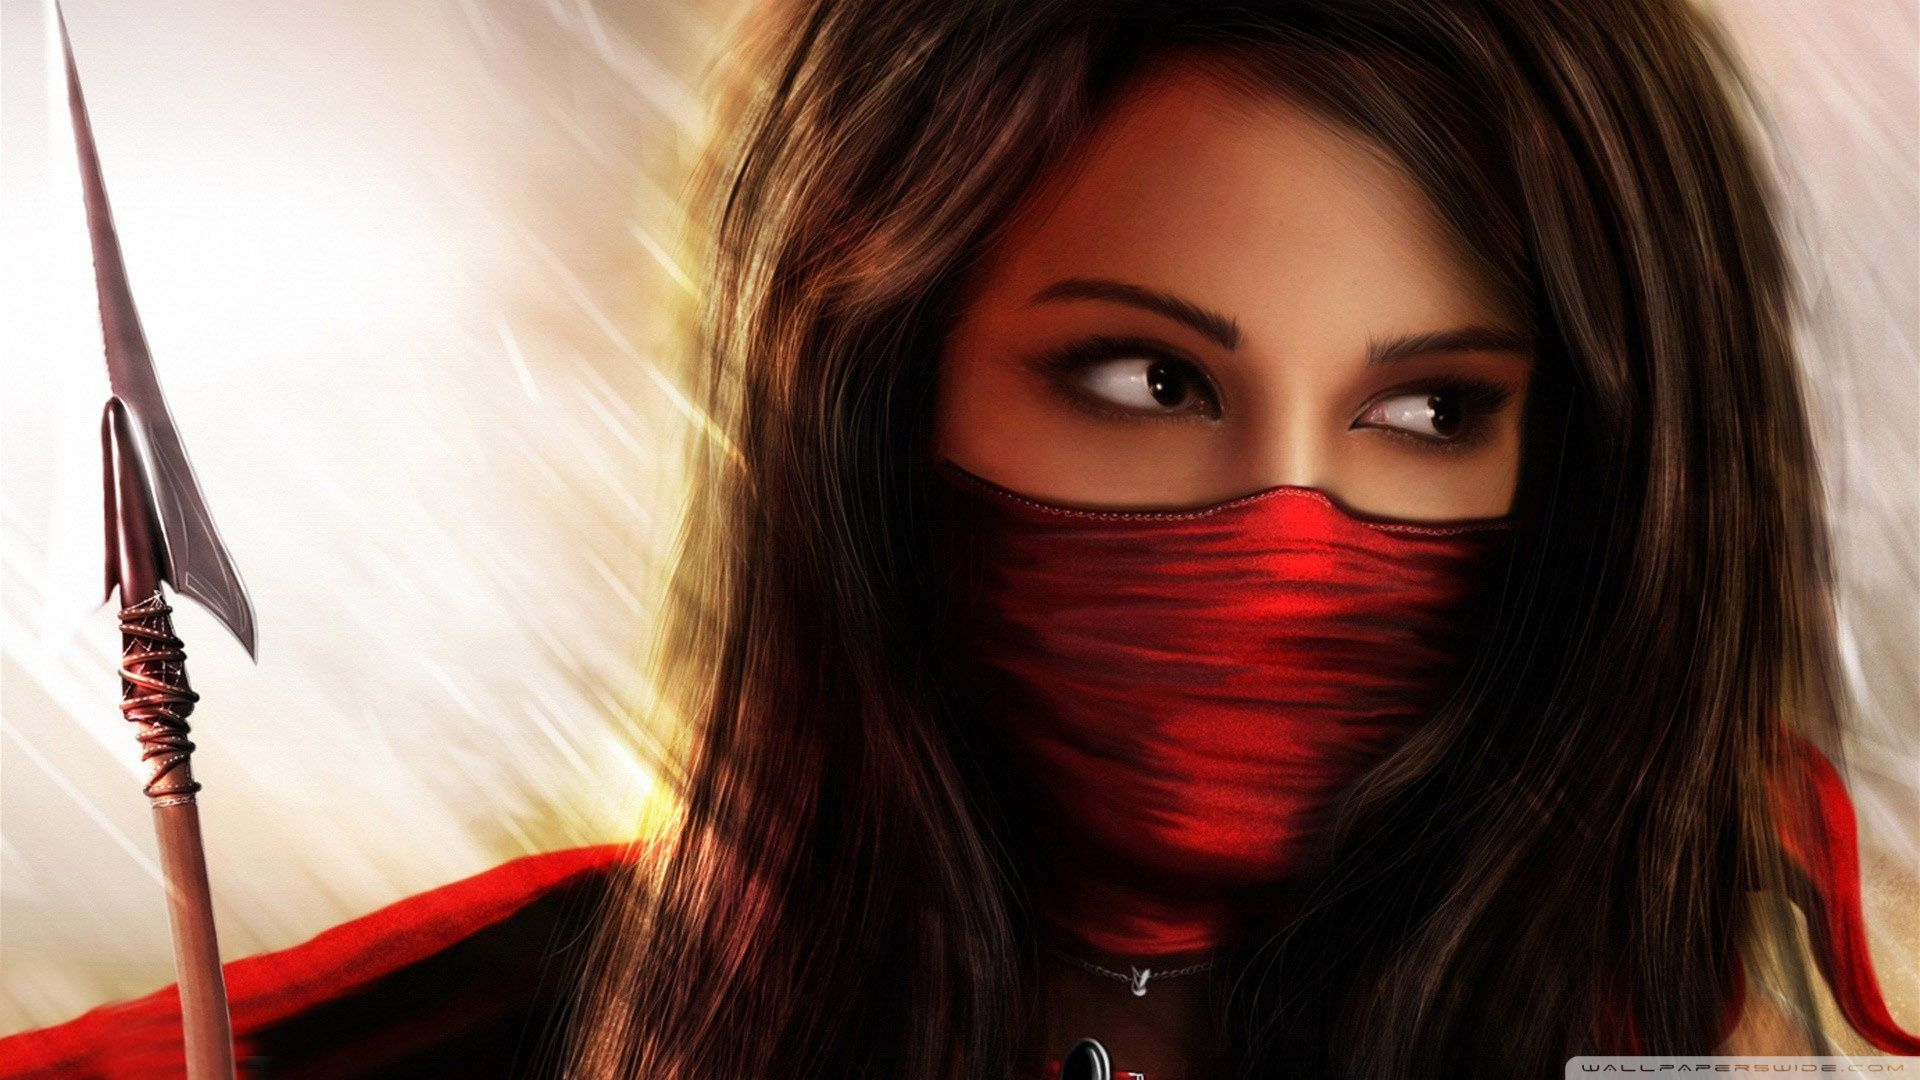 Ninja Girl Wallpapers Top Free Ninja Girl Backgrounds Wallpaperaccess